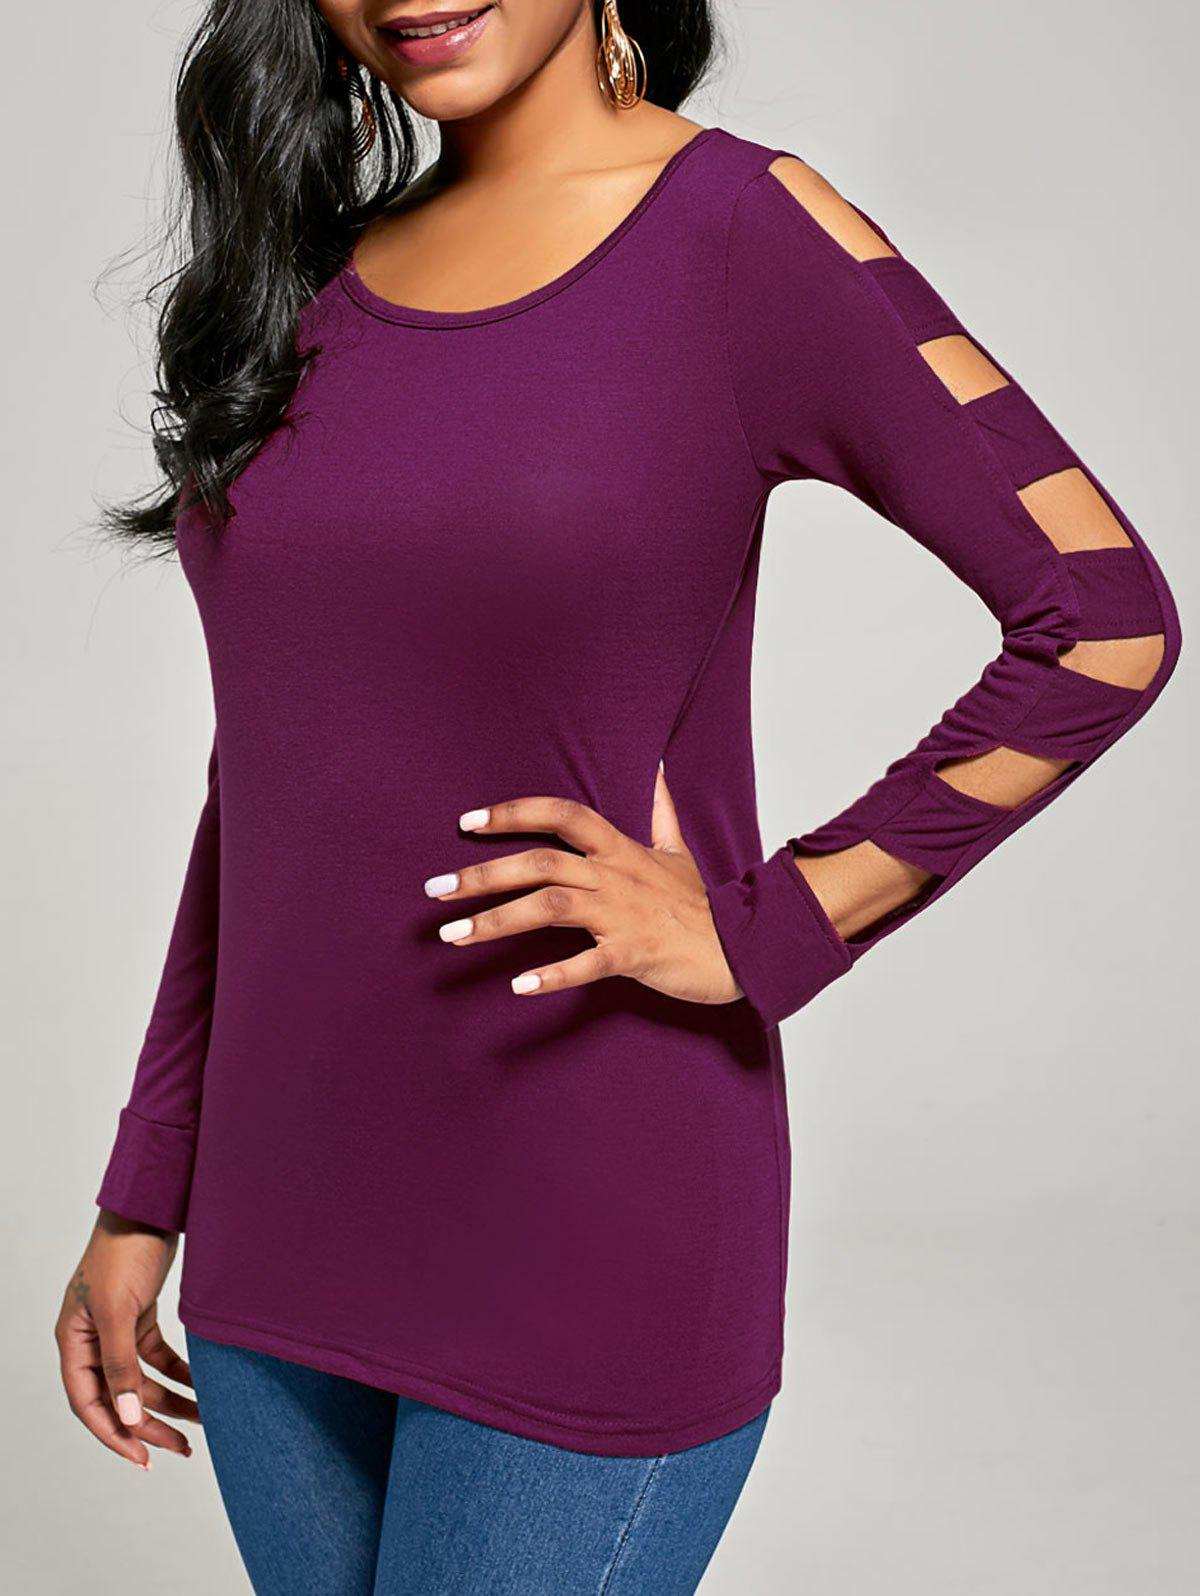 Elegant Women's Solid Color Cut Out T-Shirt For Women